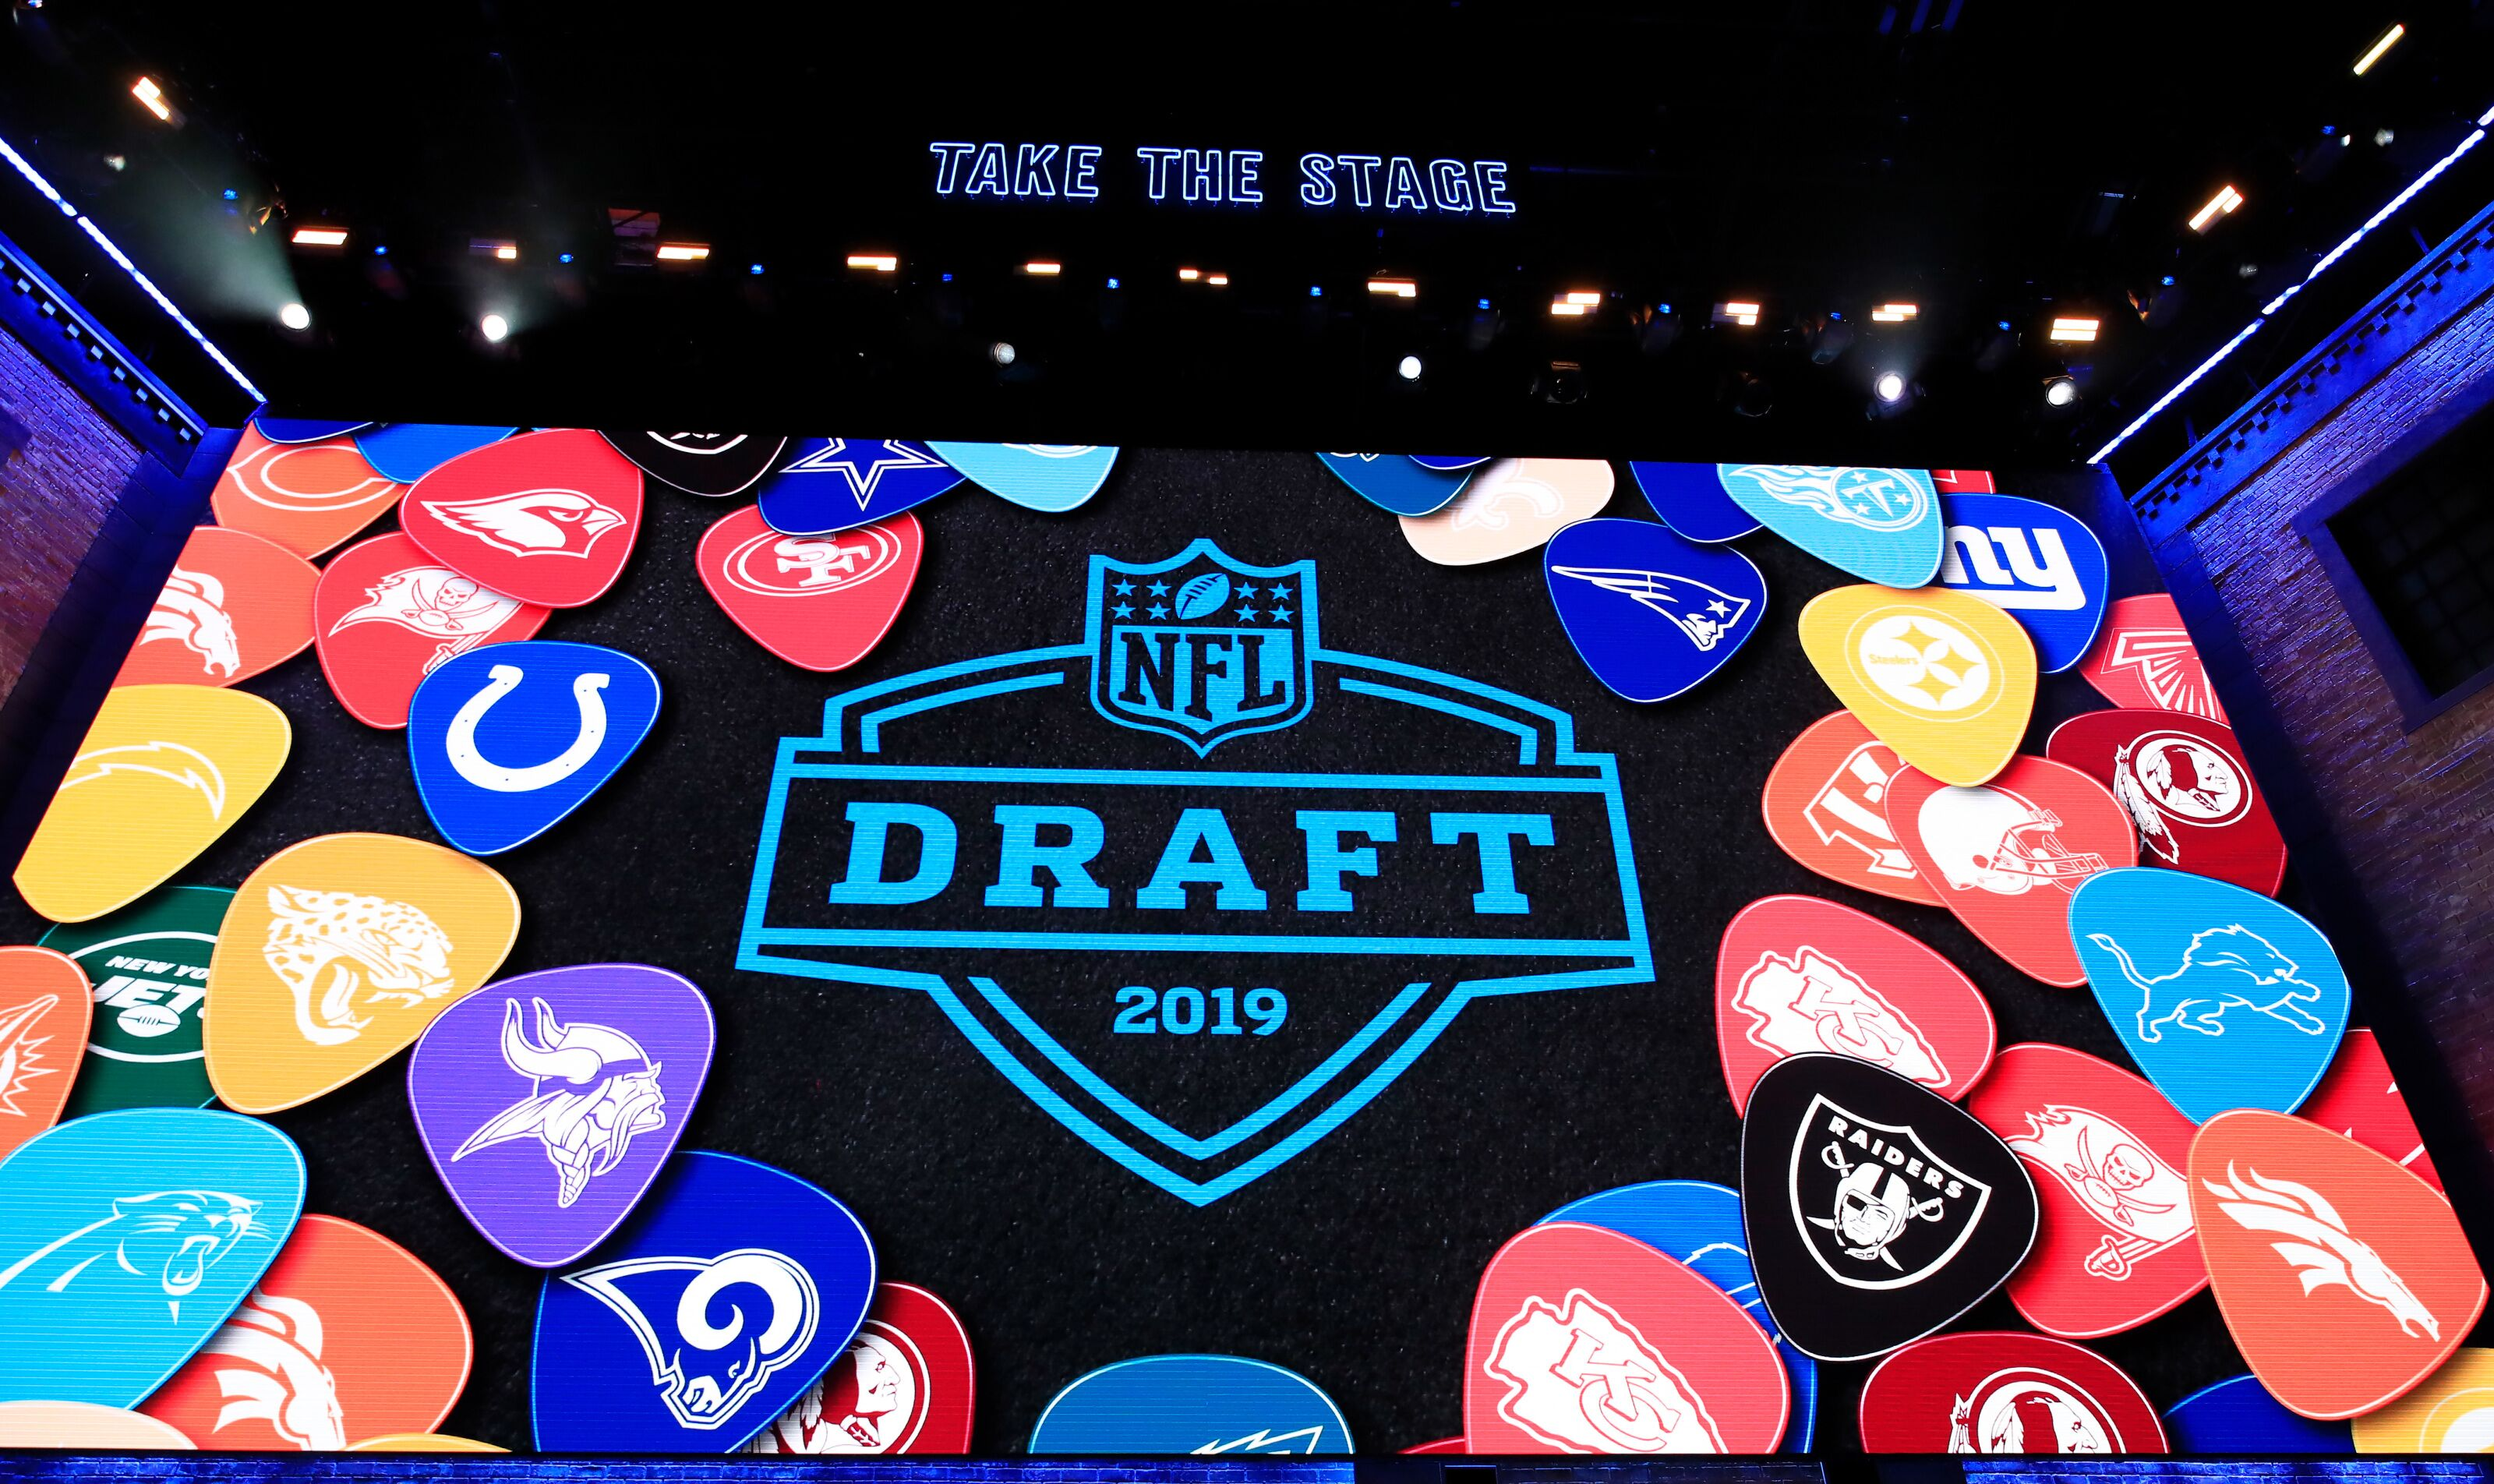 Best Offensive Tackles In 2020 Draft Early 2020 mock draft has Packers going tackle in first round